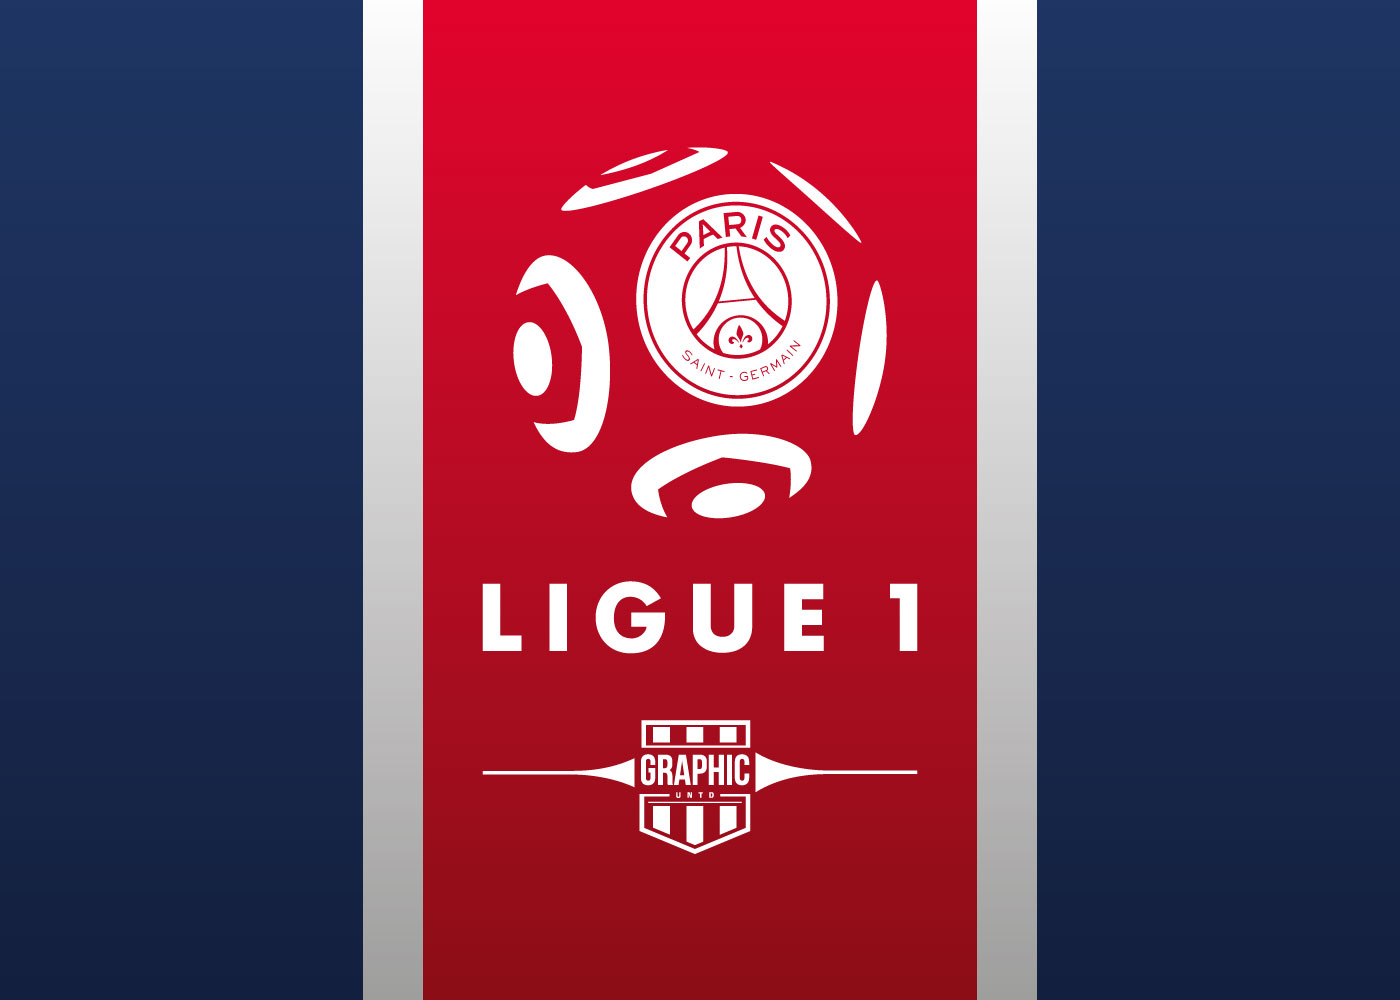 Ligue 1 x Paris Saint Germain